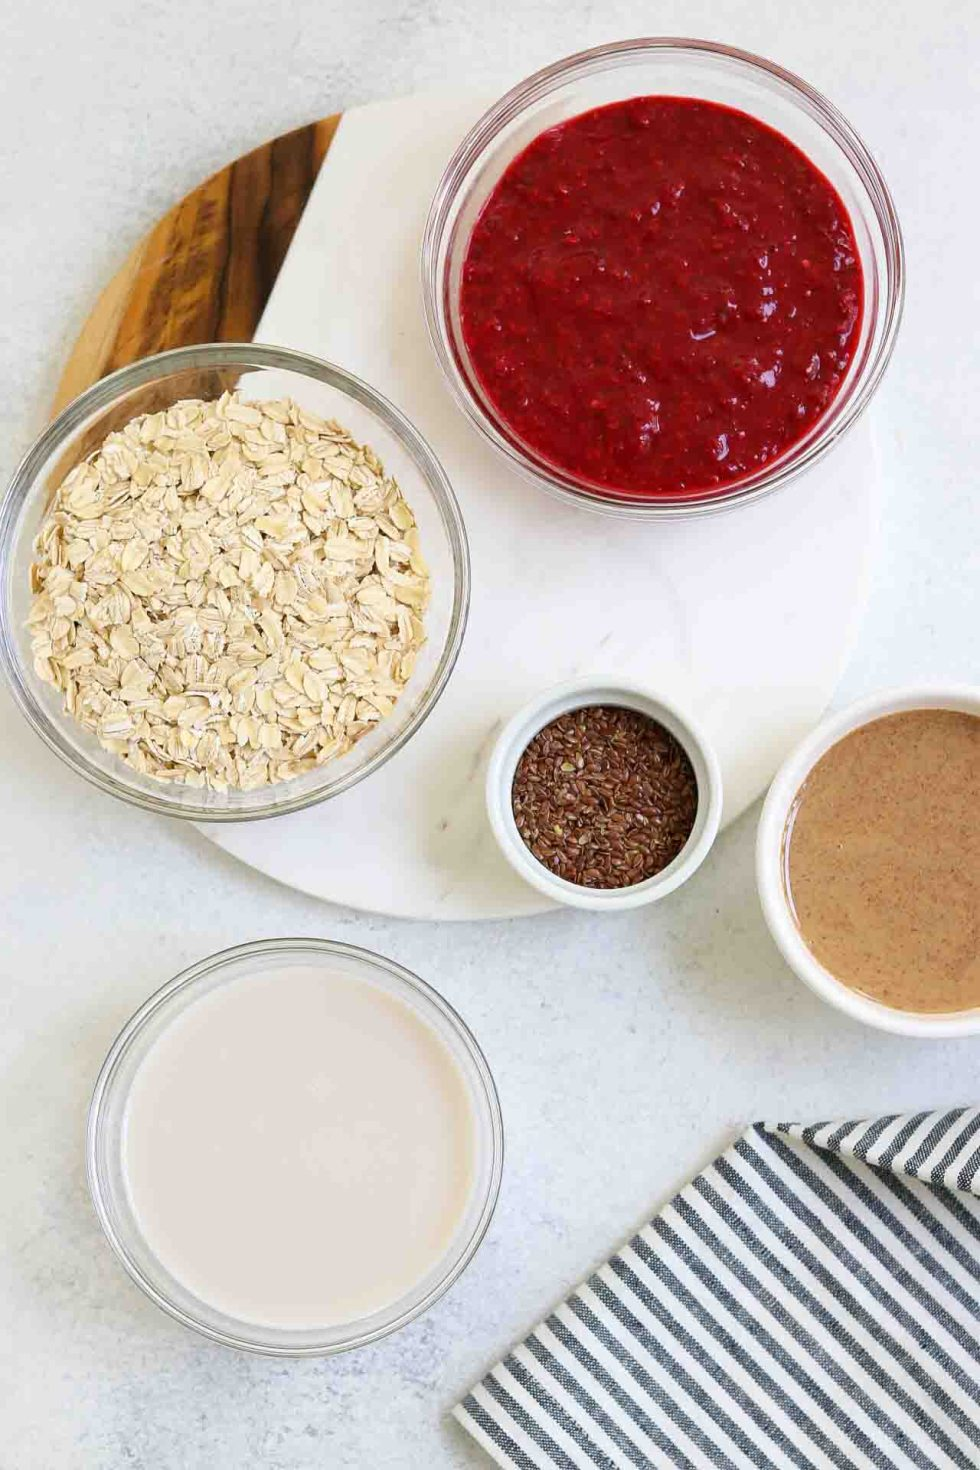 Ingredients arranged for this easy overnight oats recipe.